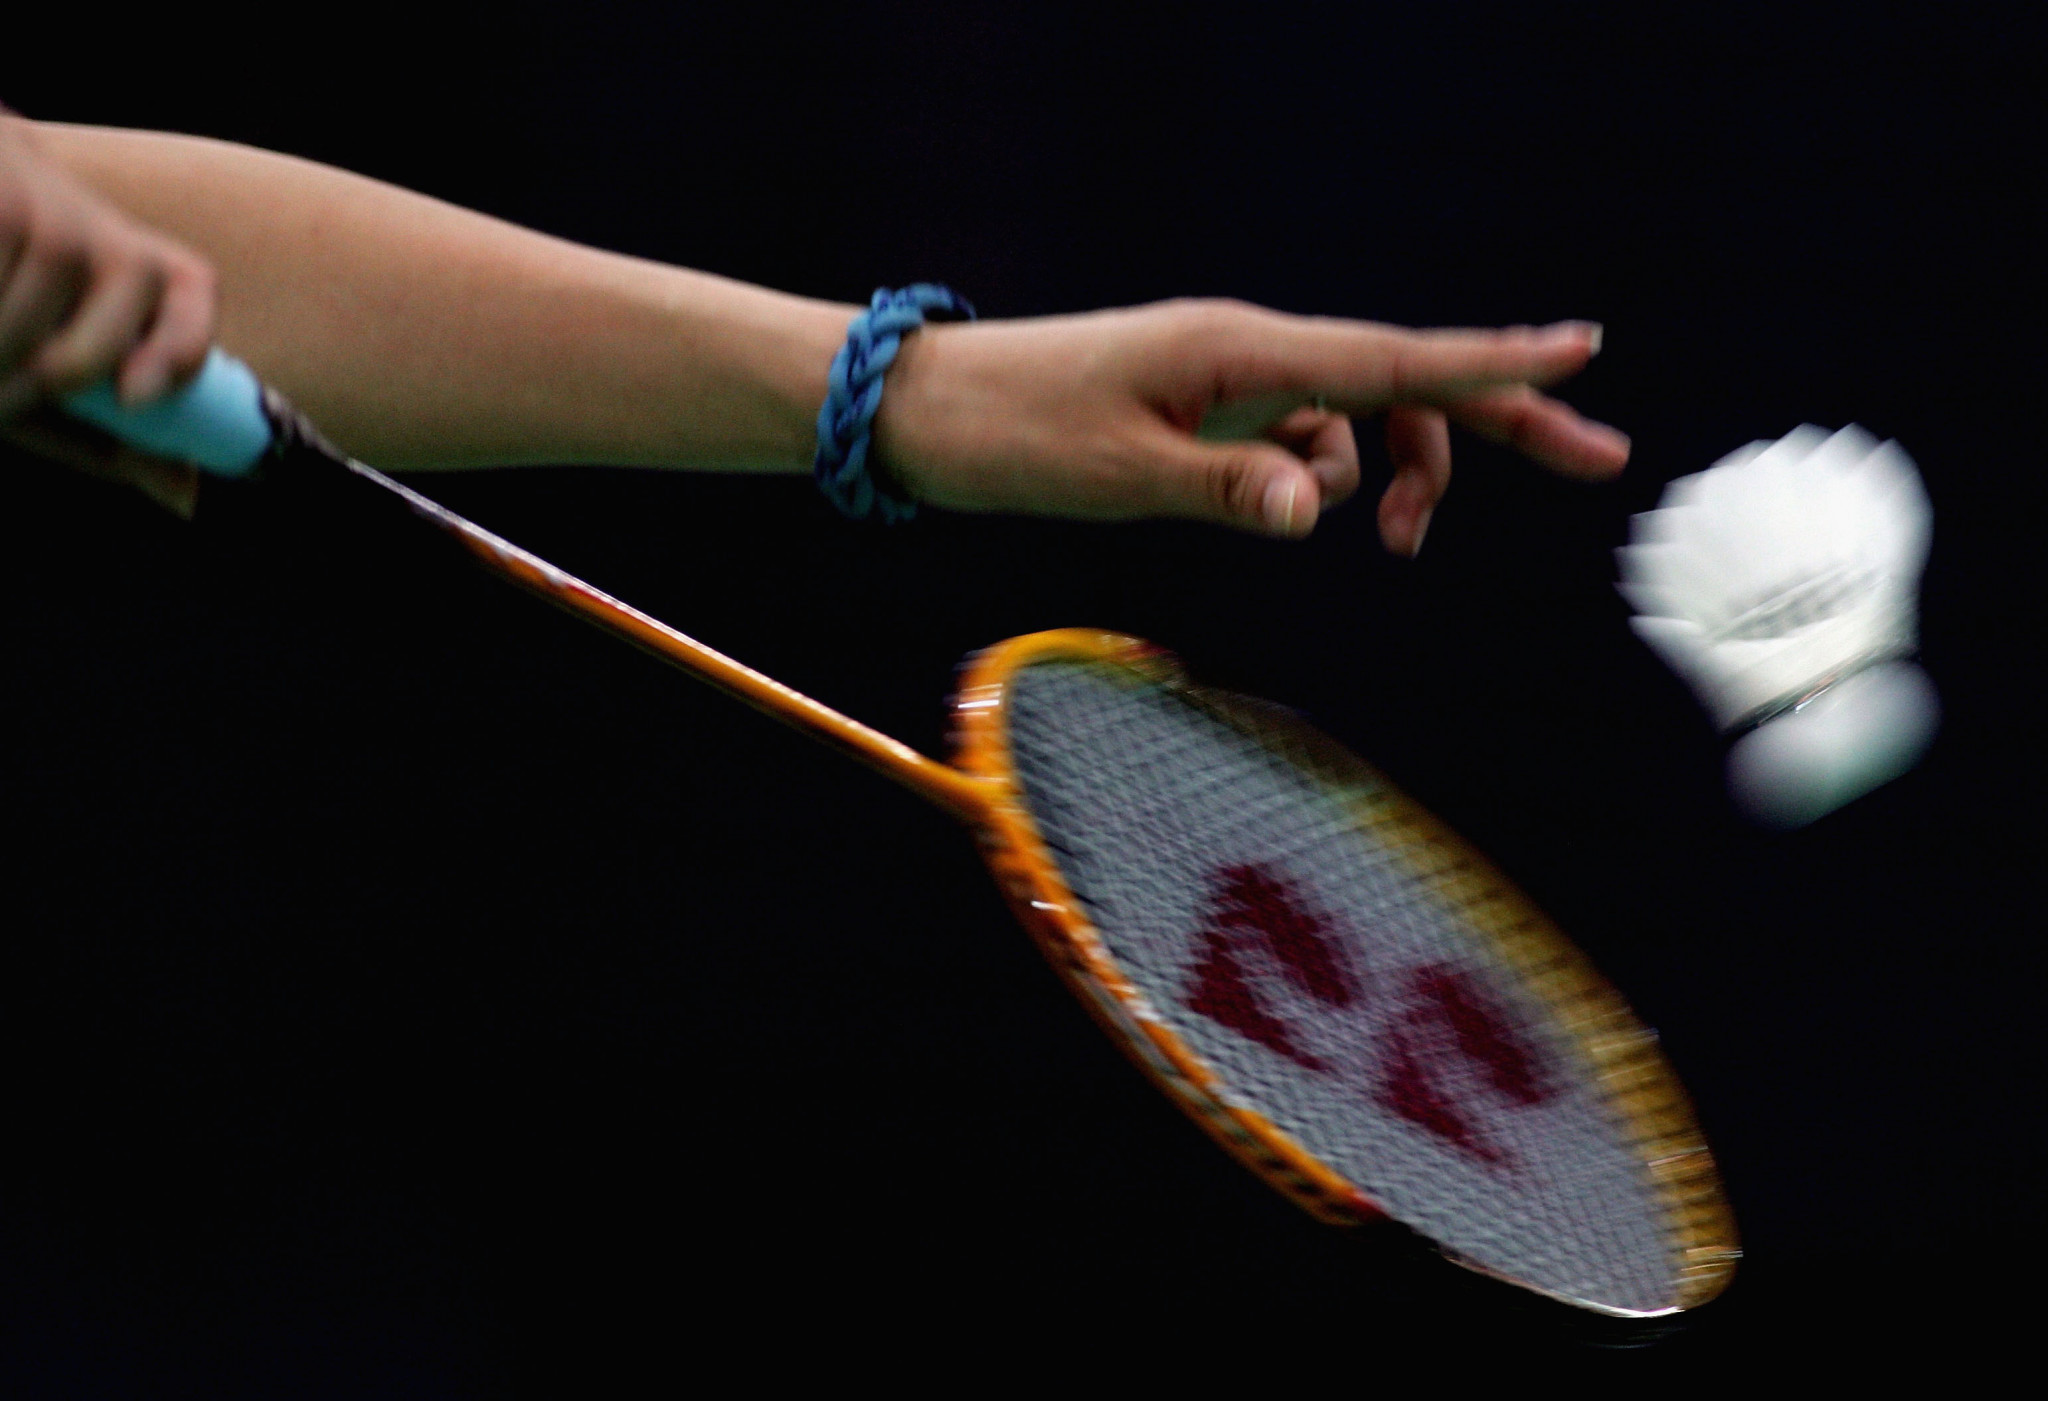 Six Malaysian badminton players have tested positive for COVID-19 ©Getty Images